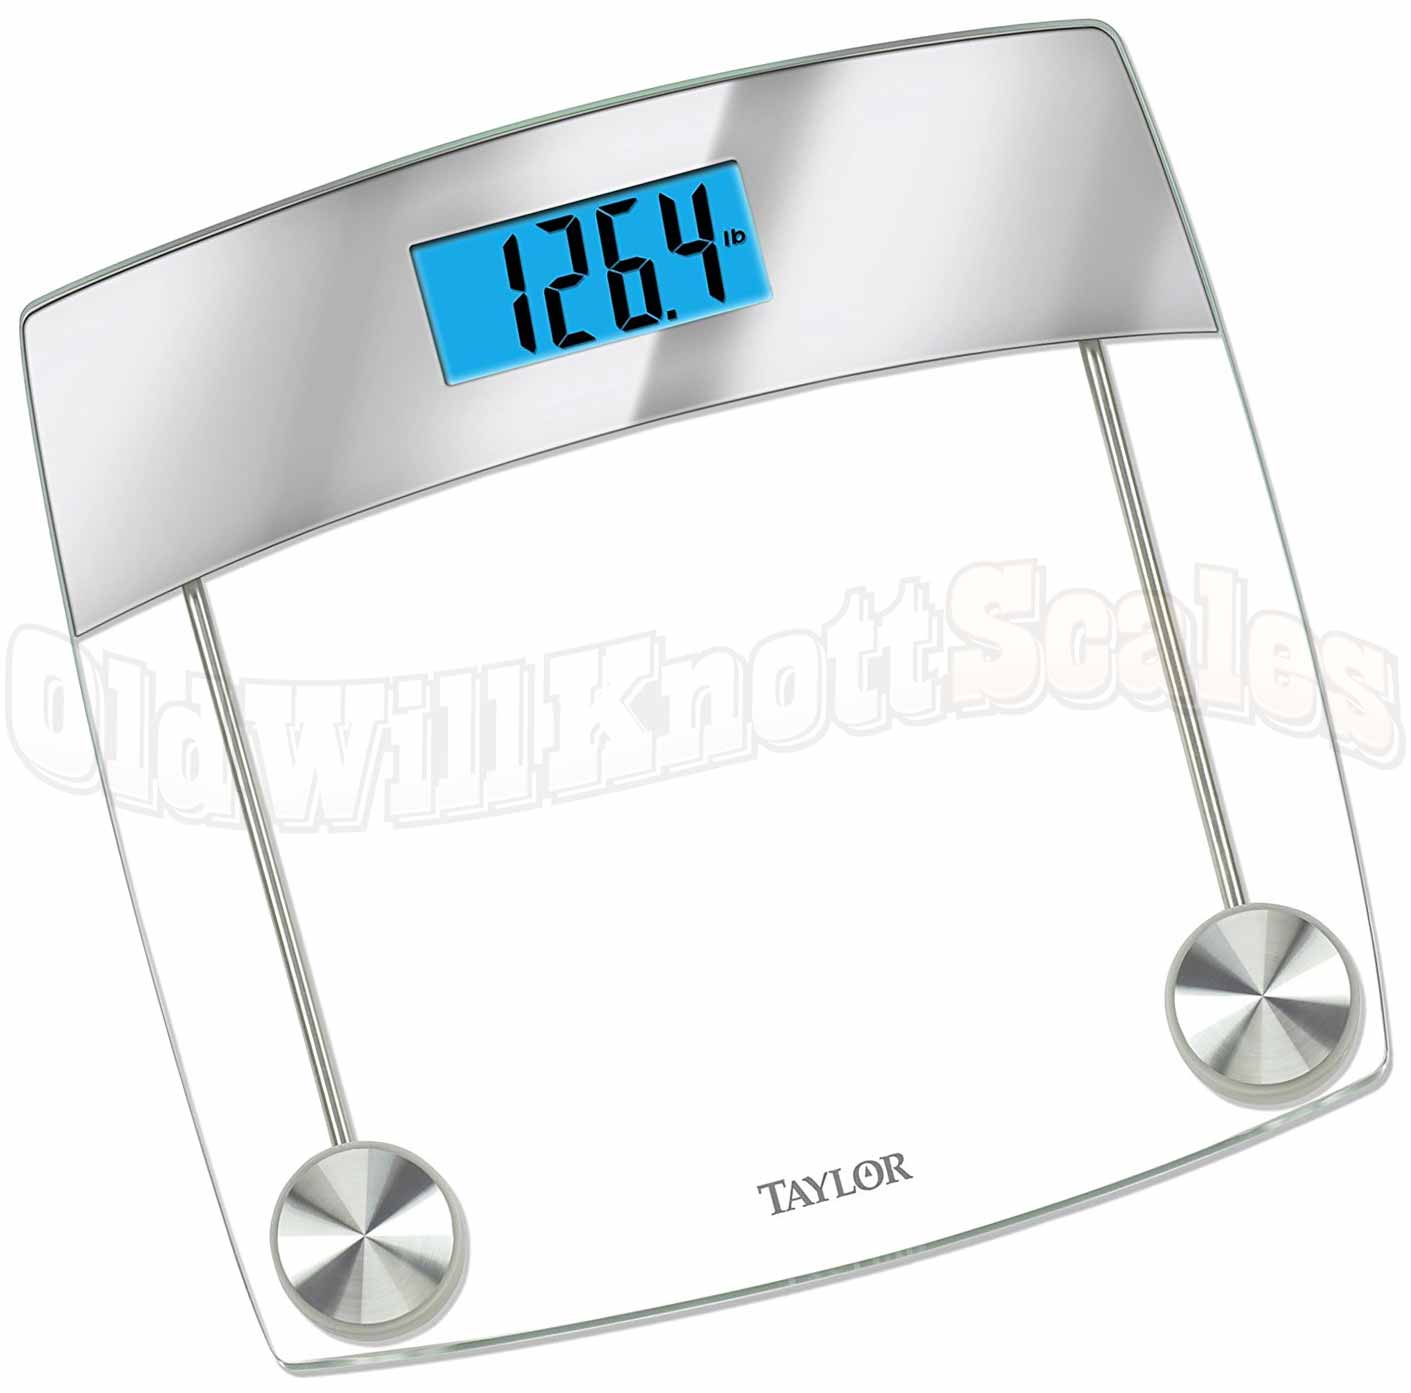 Taylor 7524 Digital Bathroom Scale with Glass and Mirror Platform